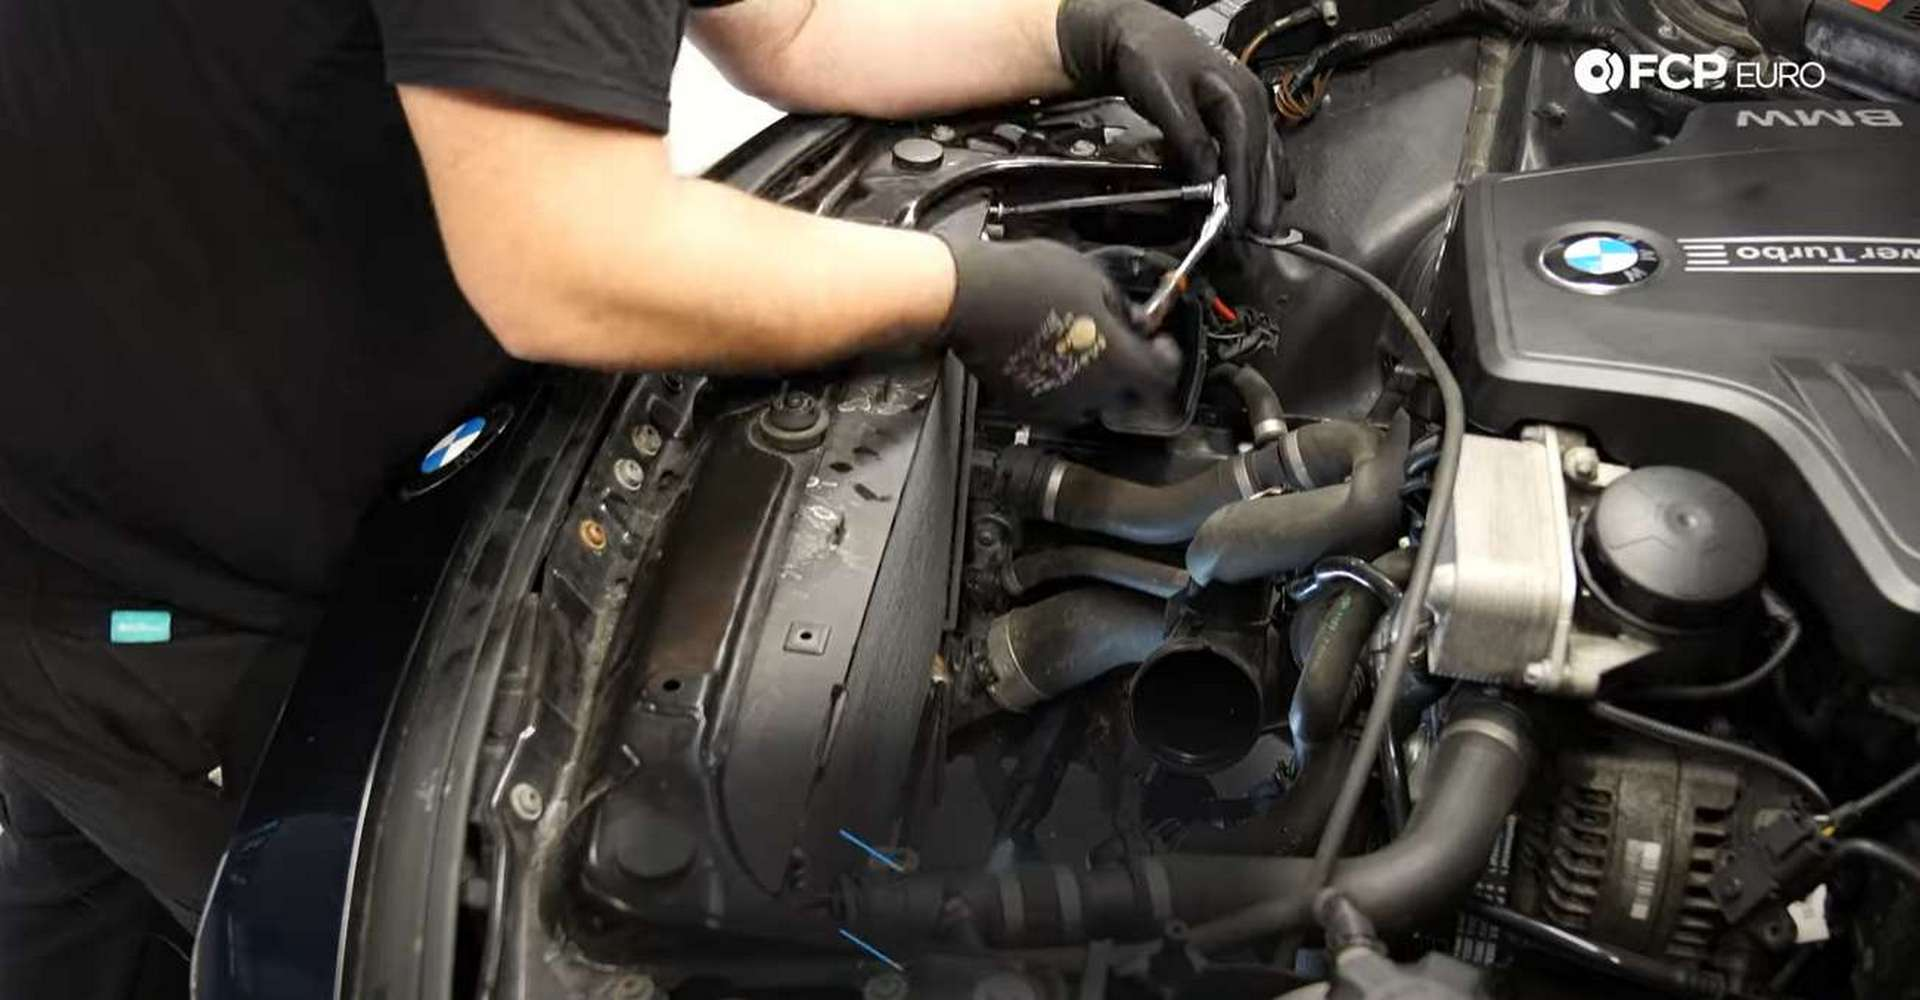 DIY BMW F30 Radiator Replacement loosening the water pump's hose clamp